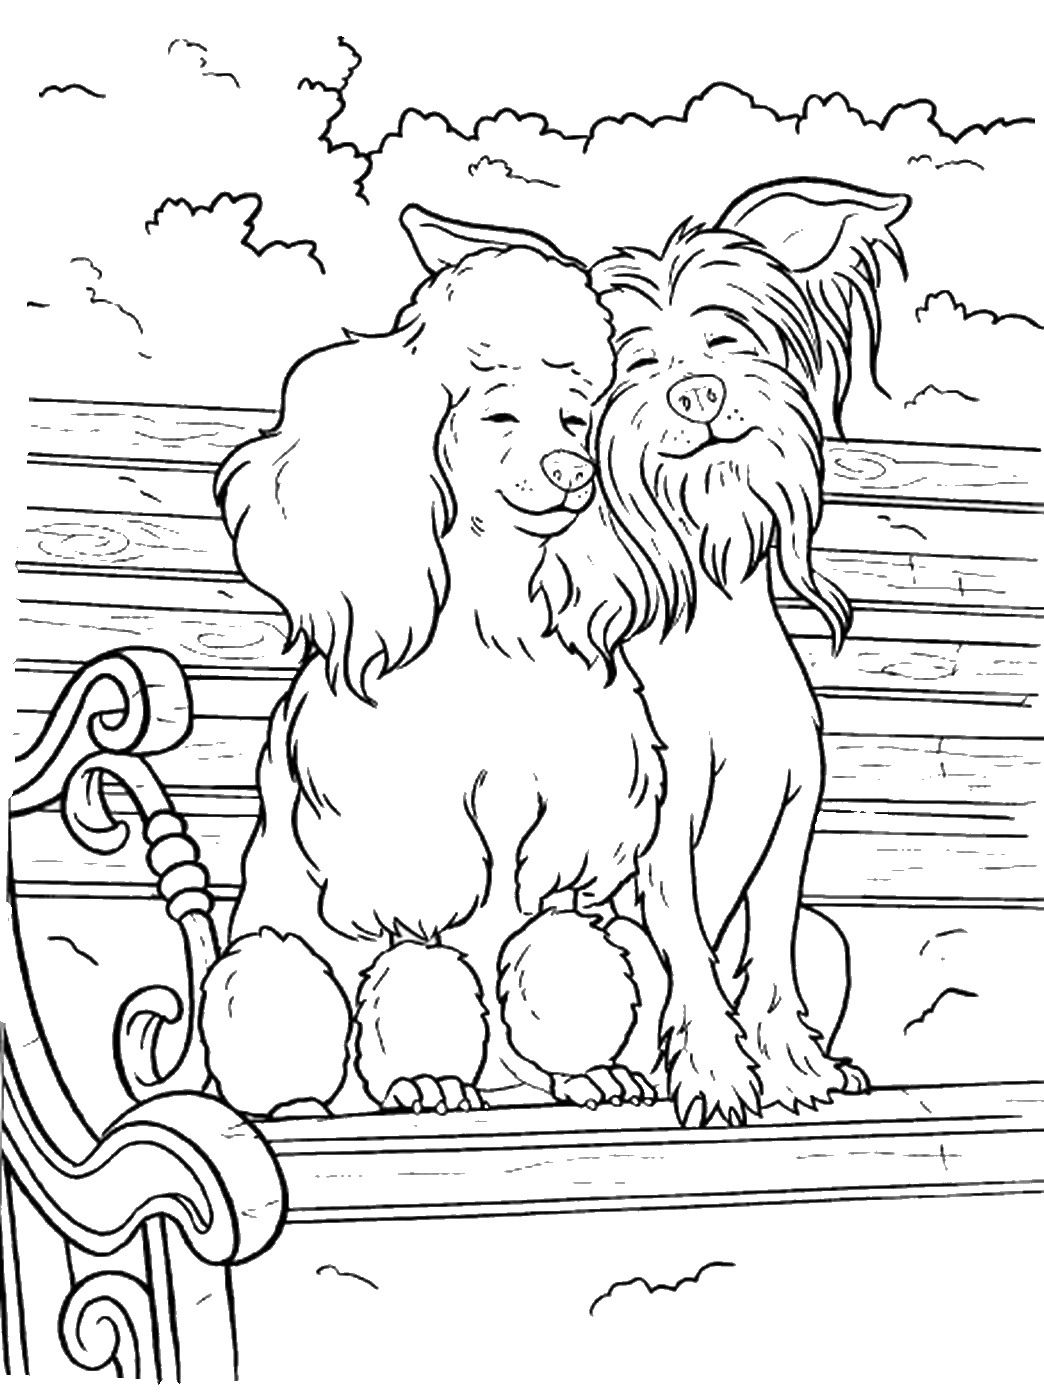 Hotel For Dogs Coloring Sketch Free Download Http Colorasketch Com Hotel For Dogs Coloring Sketch Fre Dog Coloring Book Love Coloring Pages Dog Coloring Page